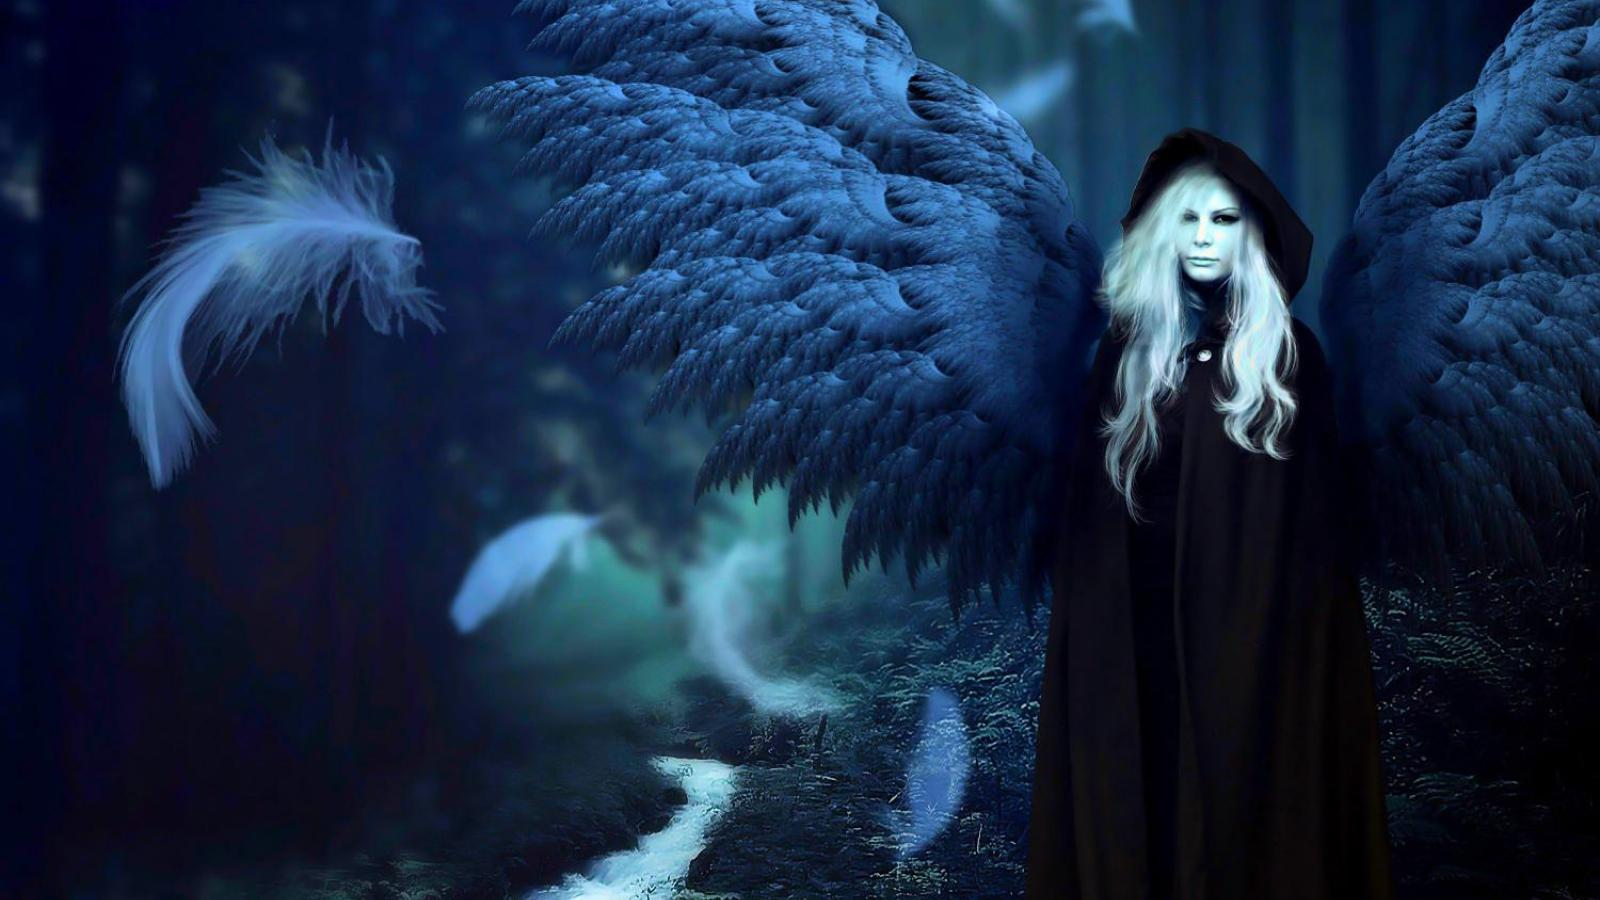 Fallen angel   126782   High Quality and Resolution Wallpapers on 1600x900